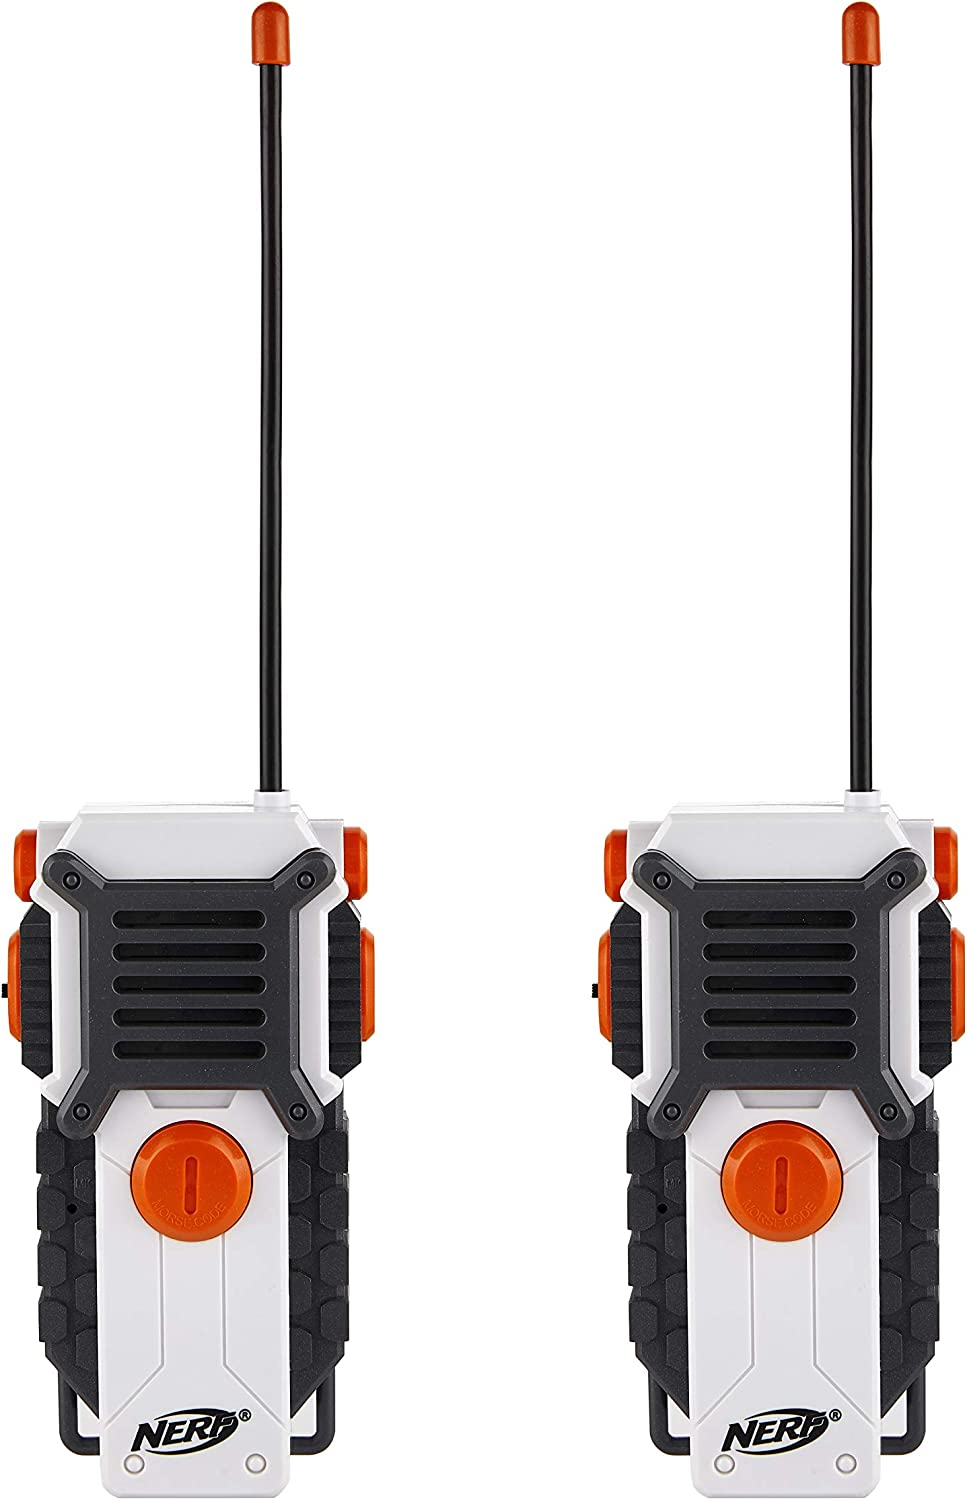 Outdoor Toys for Boys and Girls NERF Walkie Talkies for Kids by Sakar Powerful 1000ft Range Battery Powered Rugged Design White Speakers